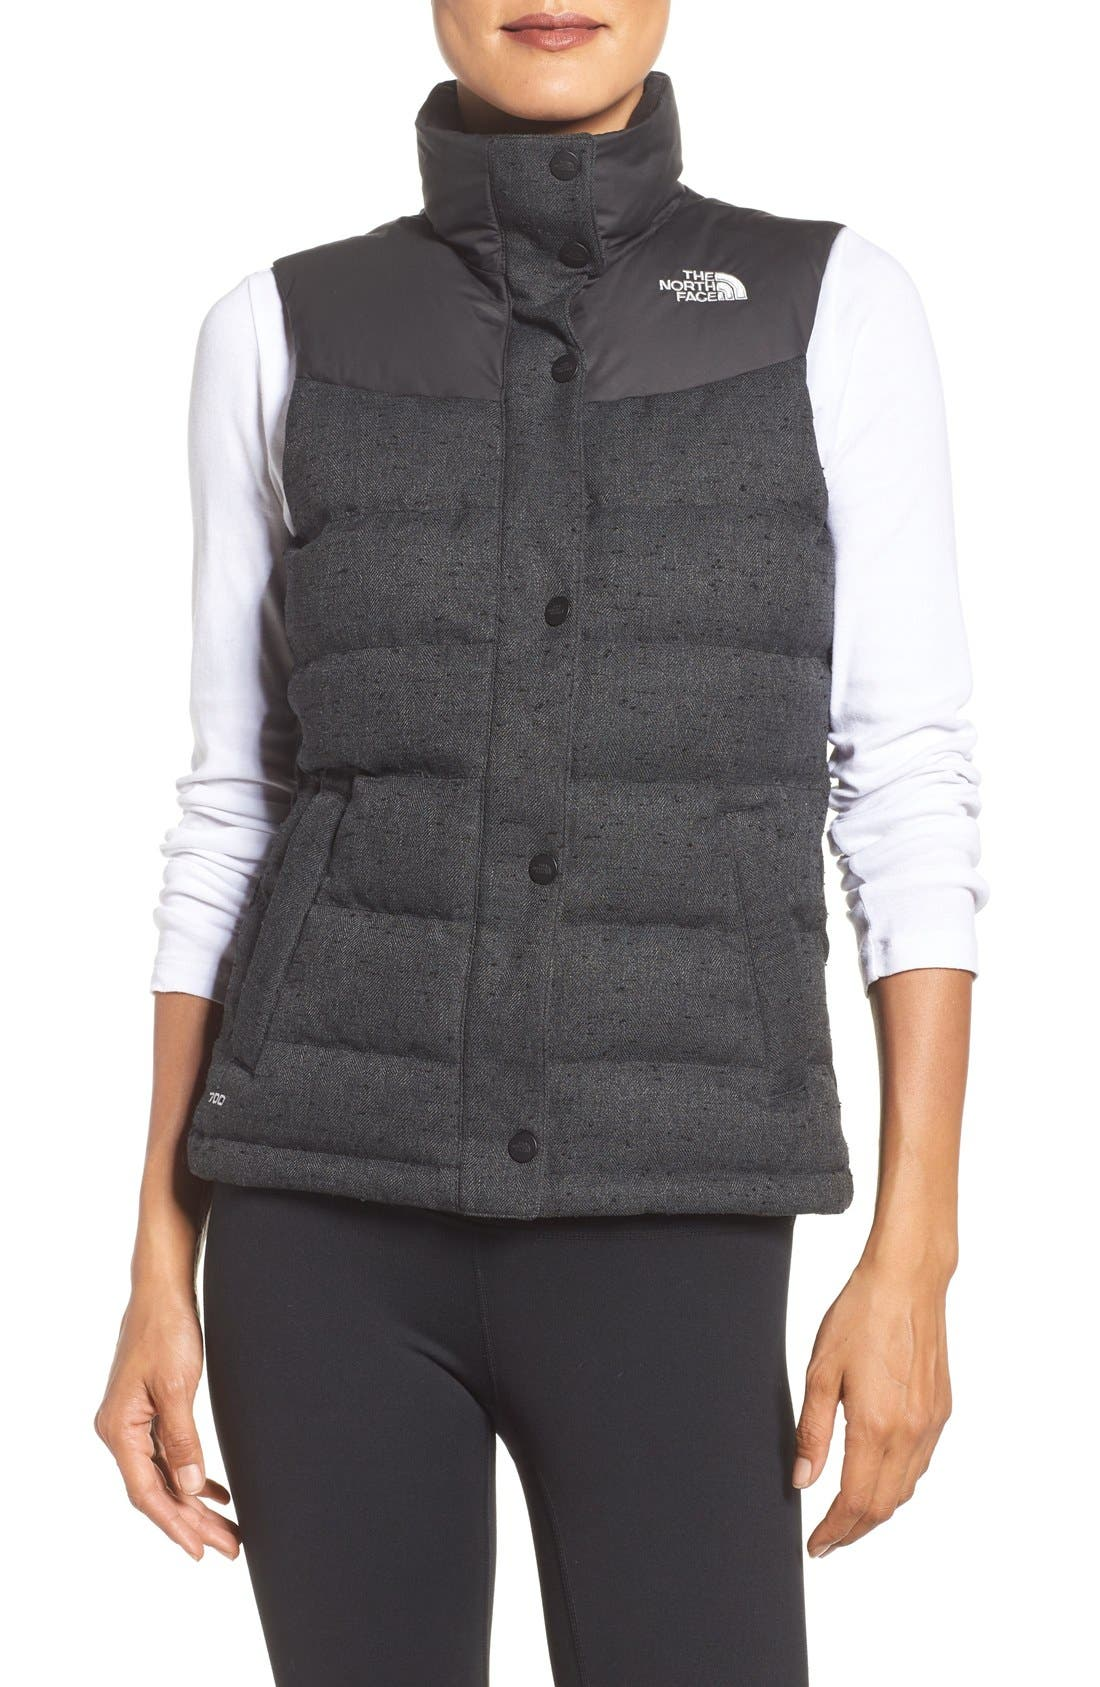 Alternate Image 1 Selected - The North Face 'Nuptse Tweed' Water Resistant Down Vest (Nordstrom Exclusive)